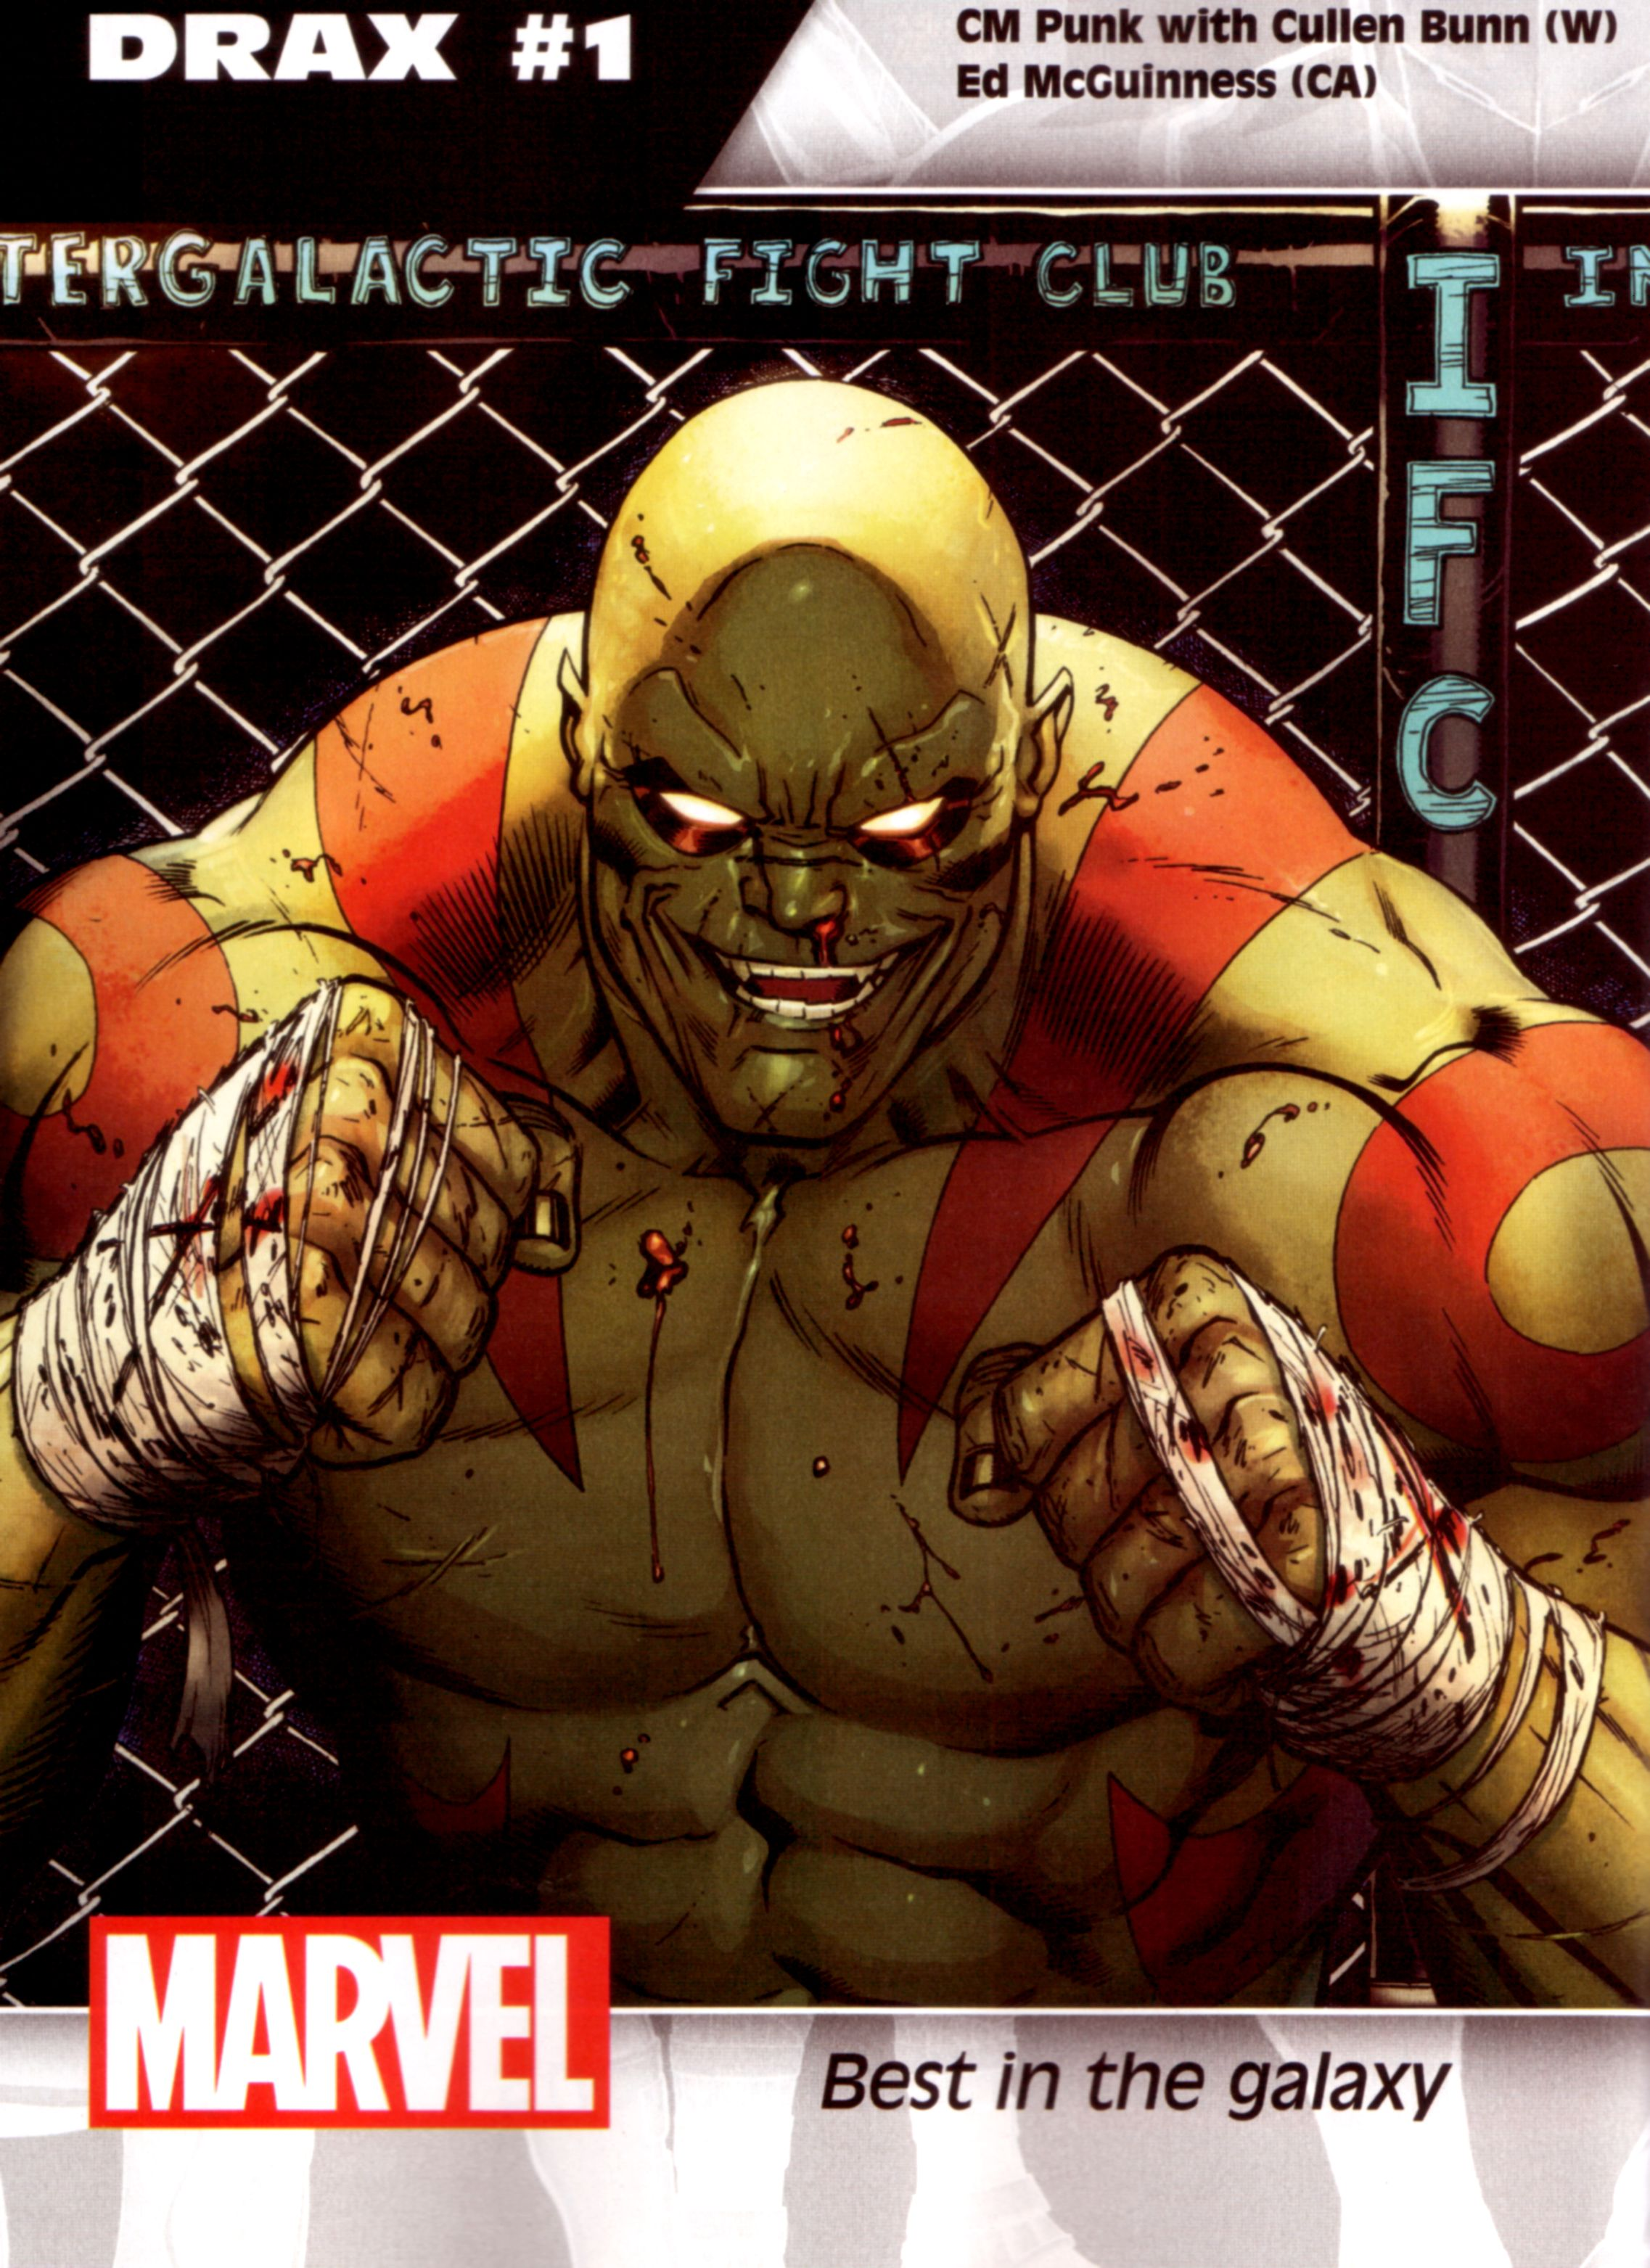 Drax #1 Midtown Comics